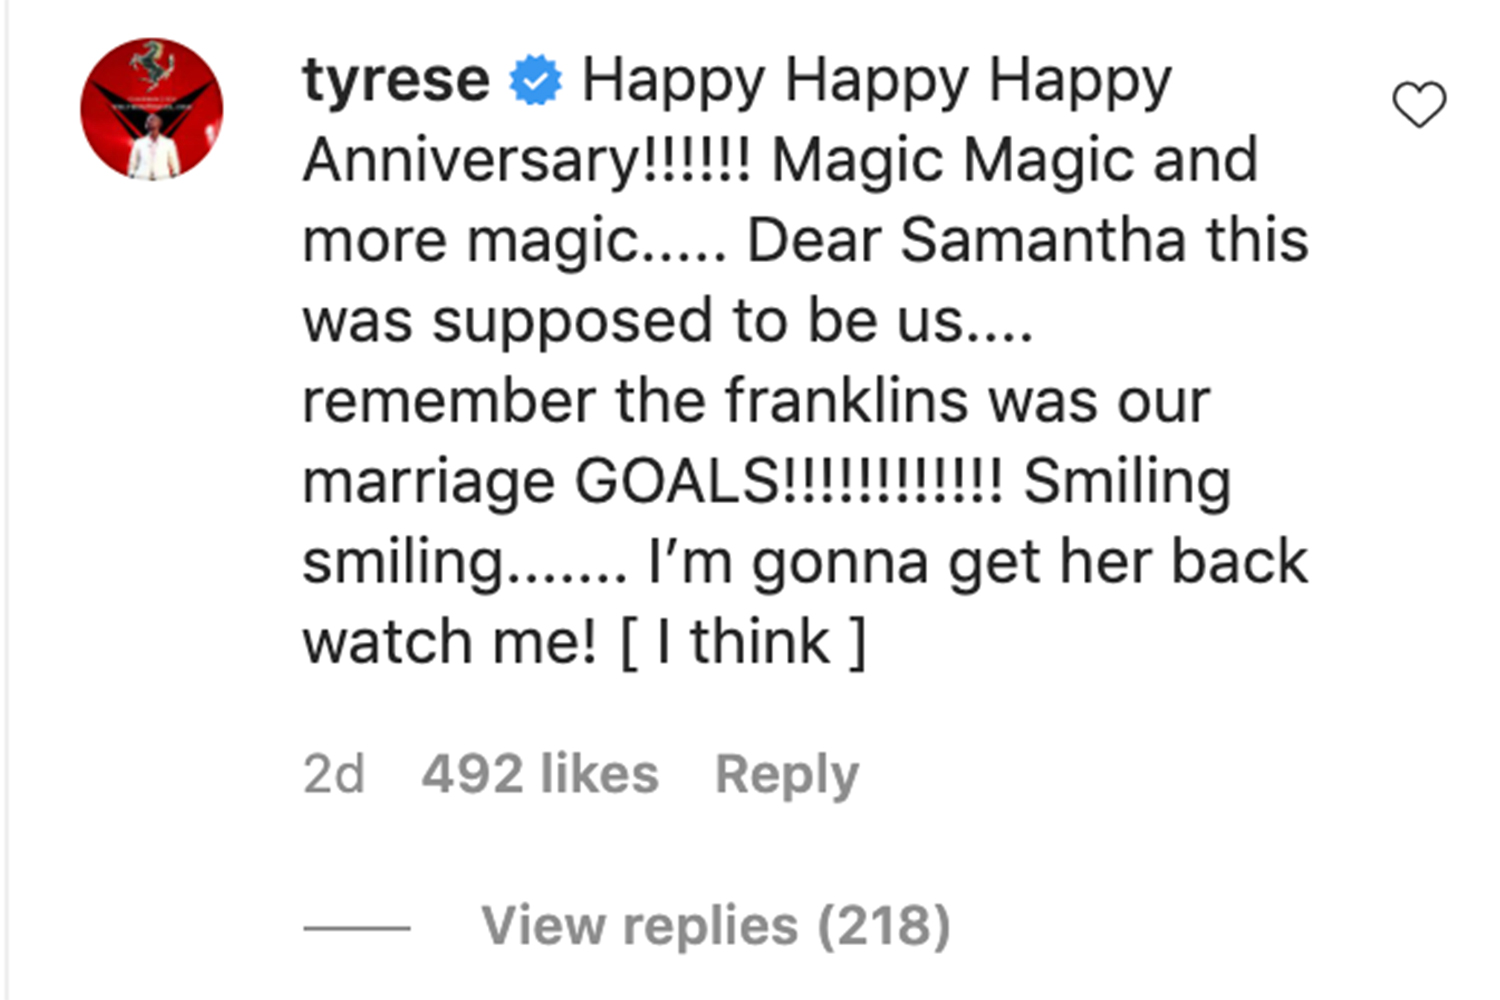 Tyrese's comment